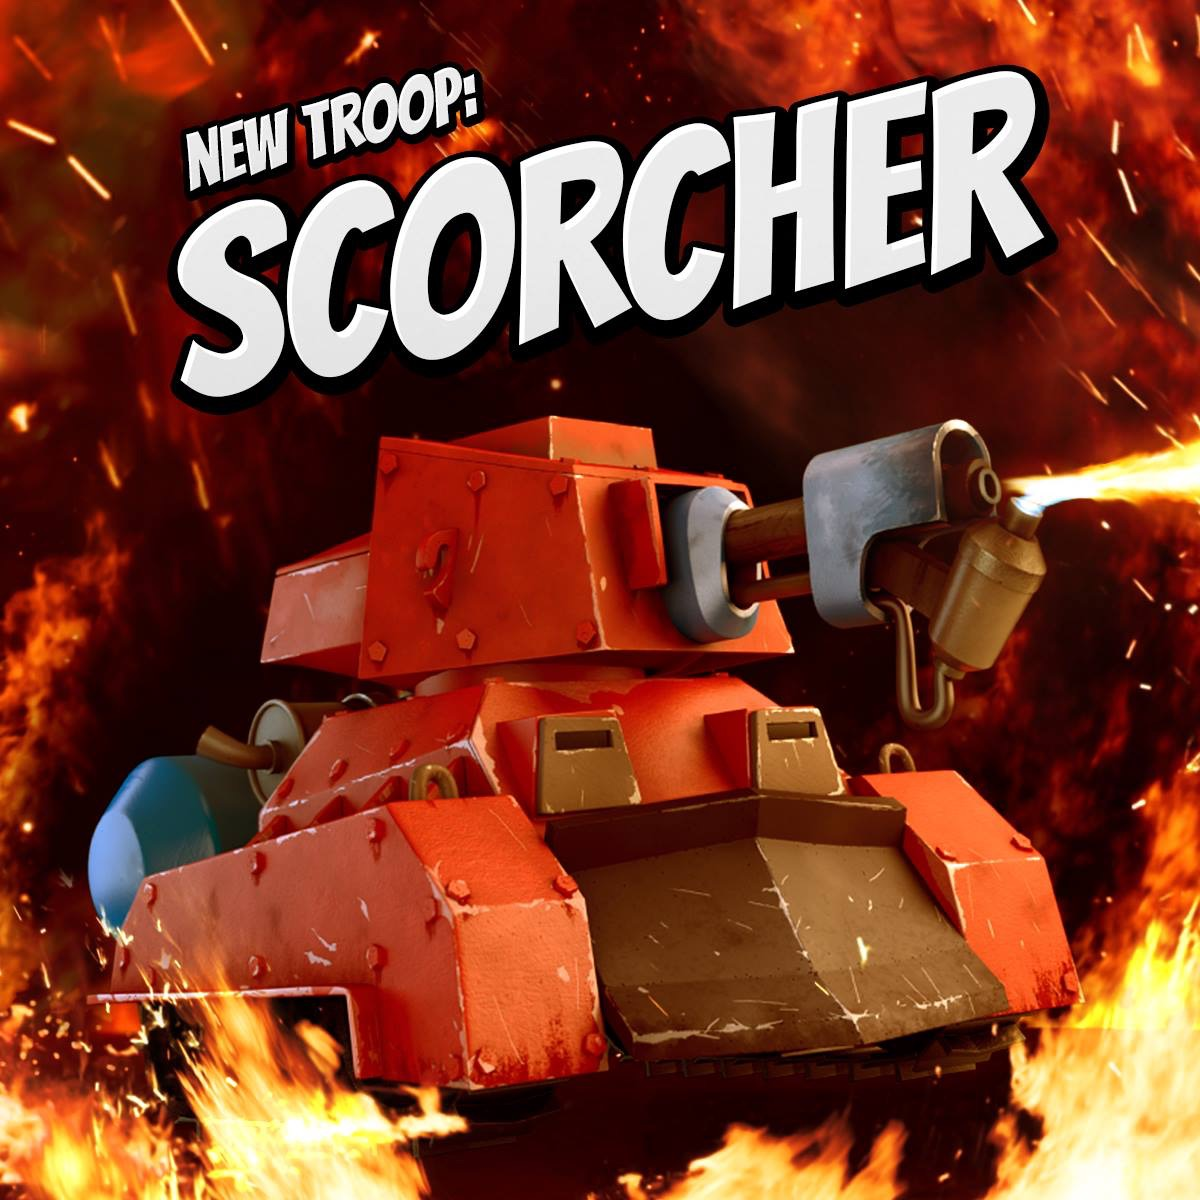 Meet the Scorcher: Supercell adds a new troop to Boom Beach